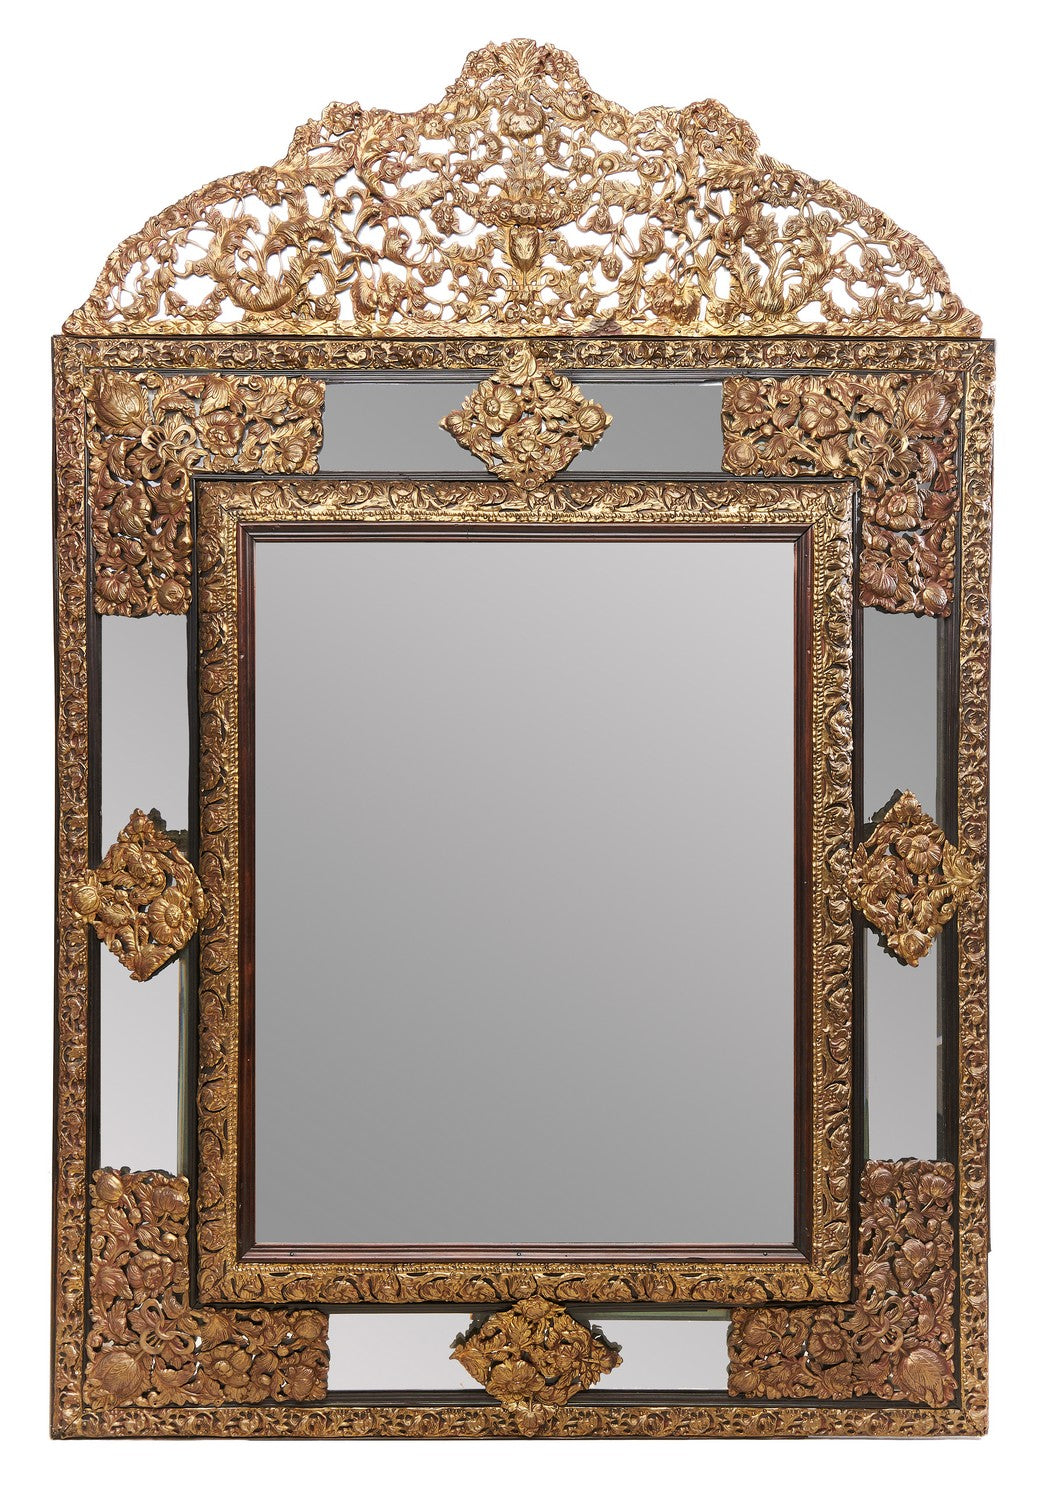 A 19th Century Dutch Cushion Fronted Repousse Mirror